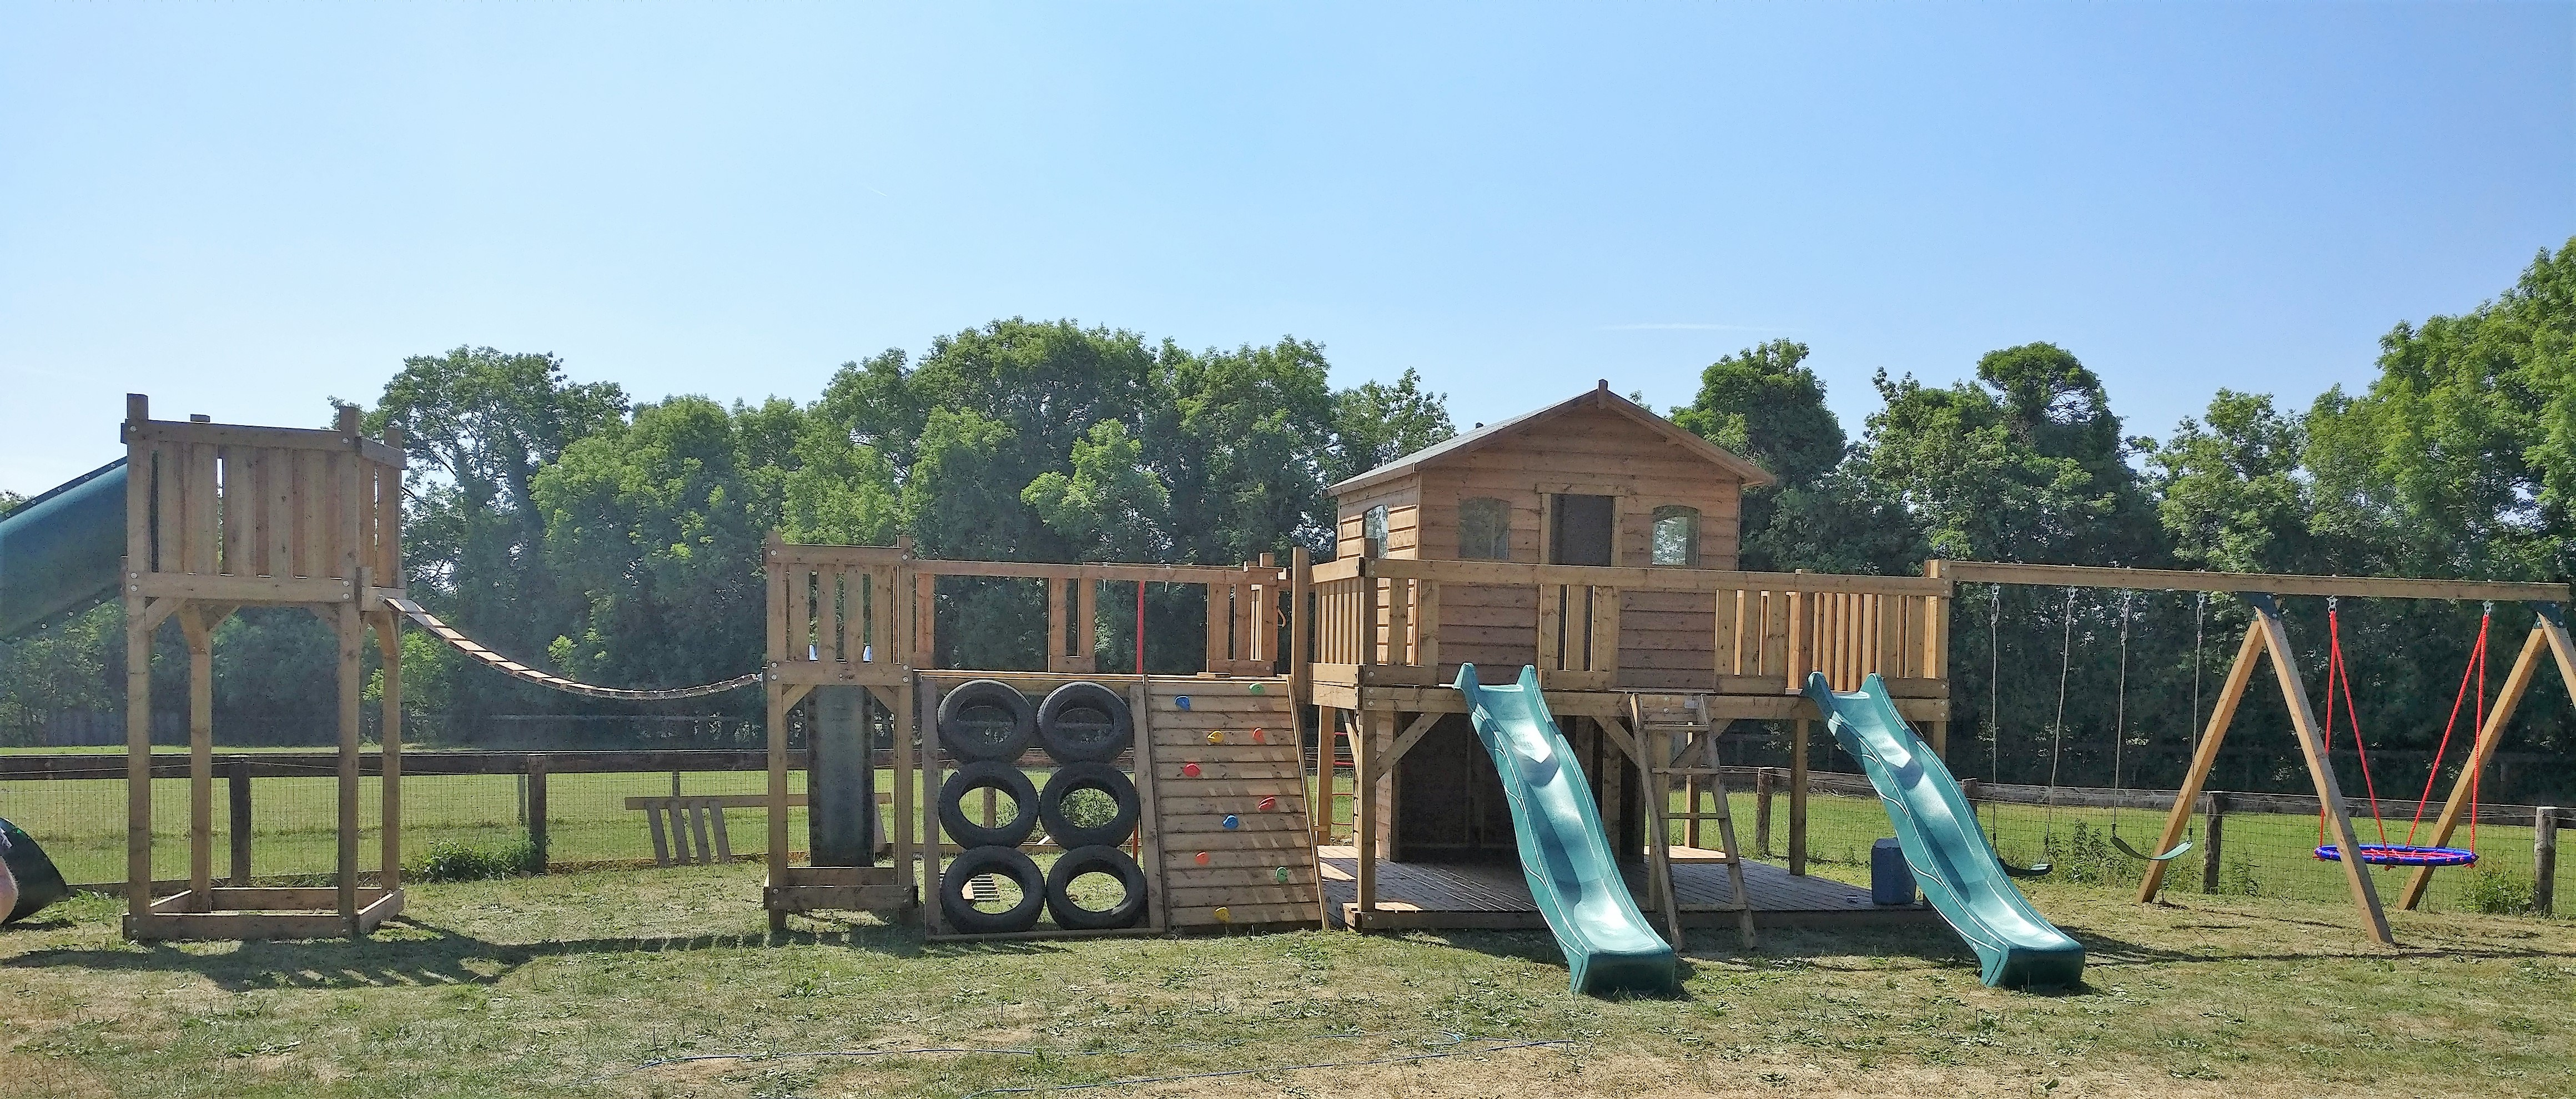 STTSwings-ultimate-jungle-gym-treehouse-playcentre